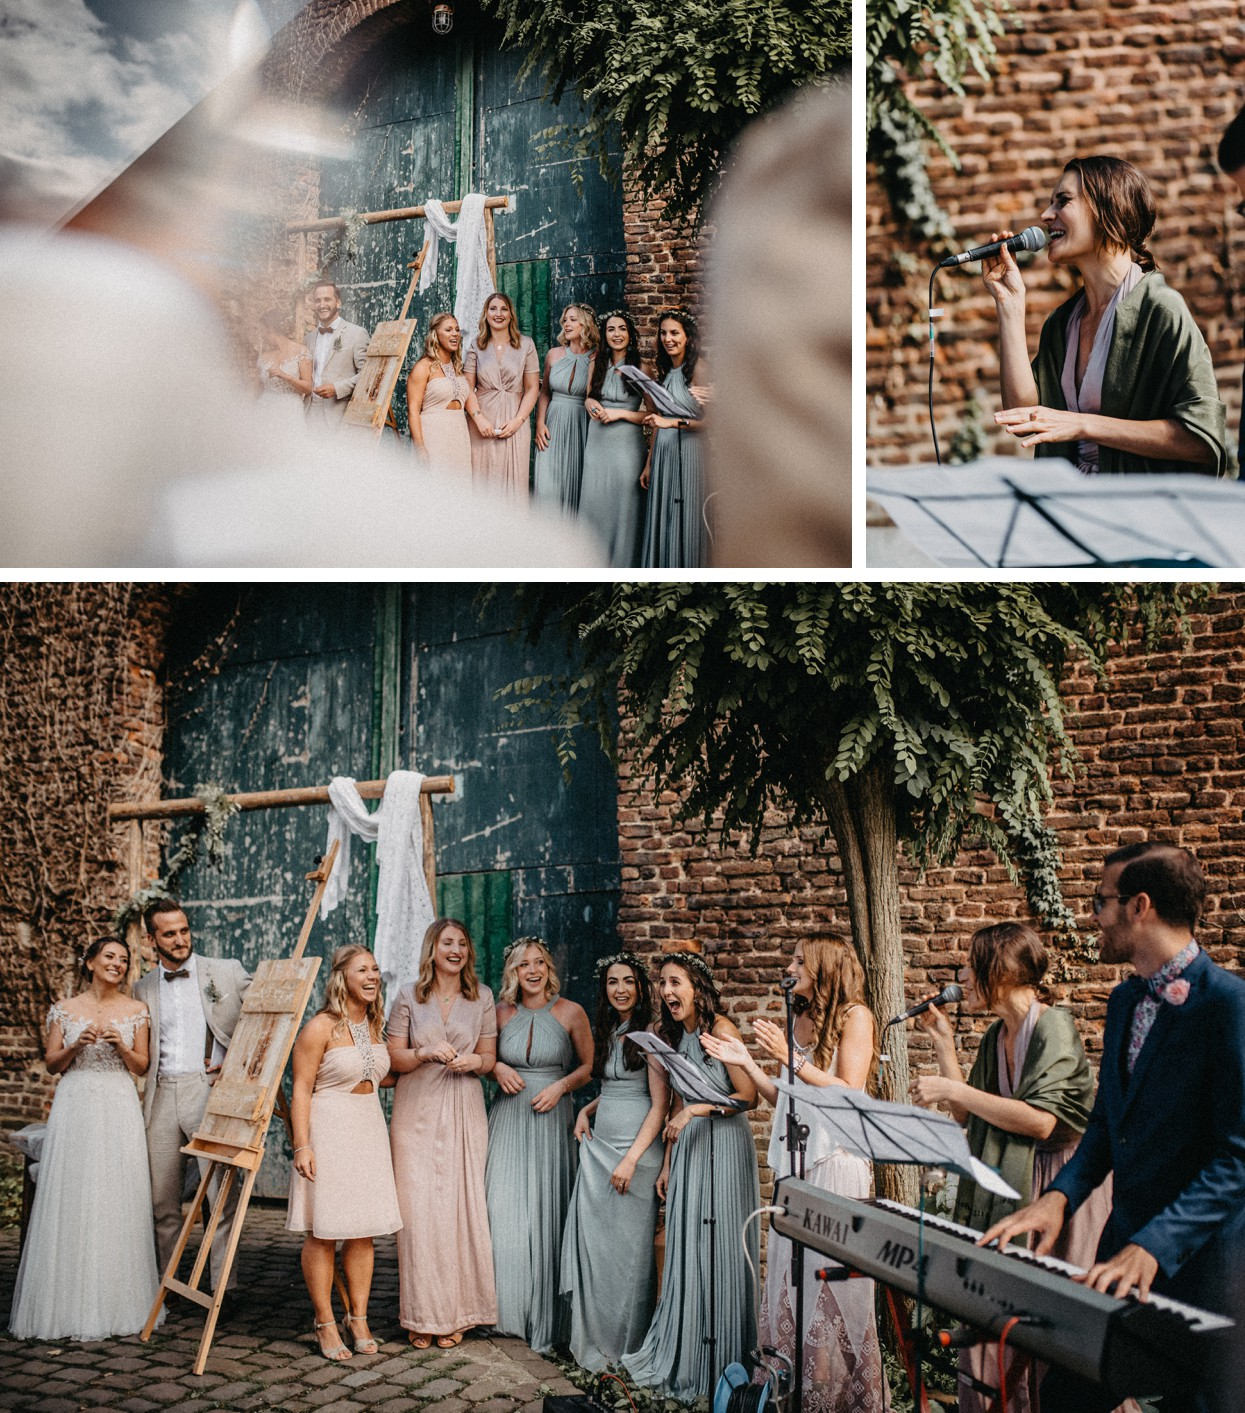 Greenery-Wedding-Wasserburg-Geretzhoven